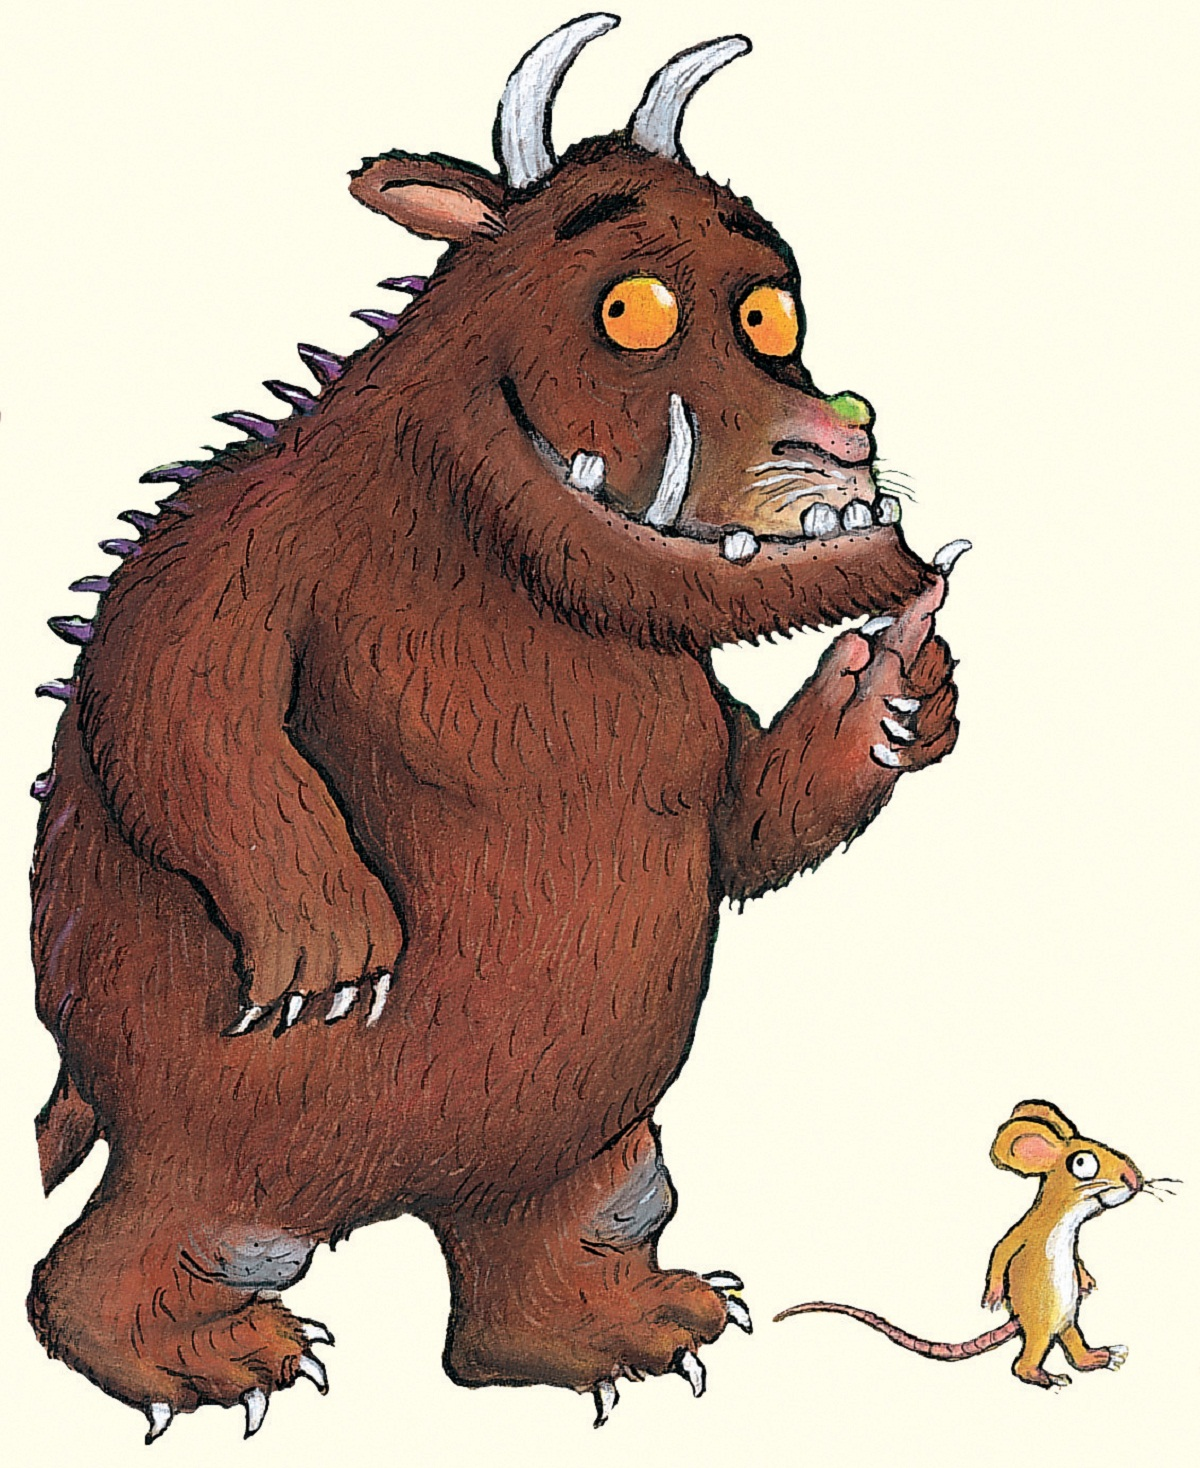 Otley Word Feast will have something for everyone including a Gruffalo walk for children